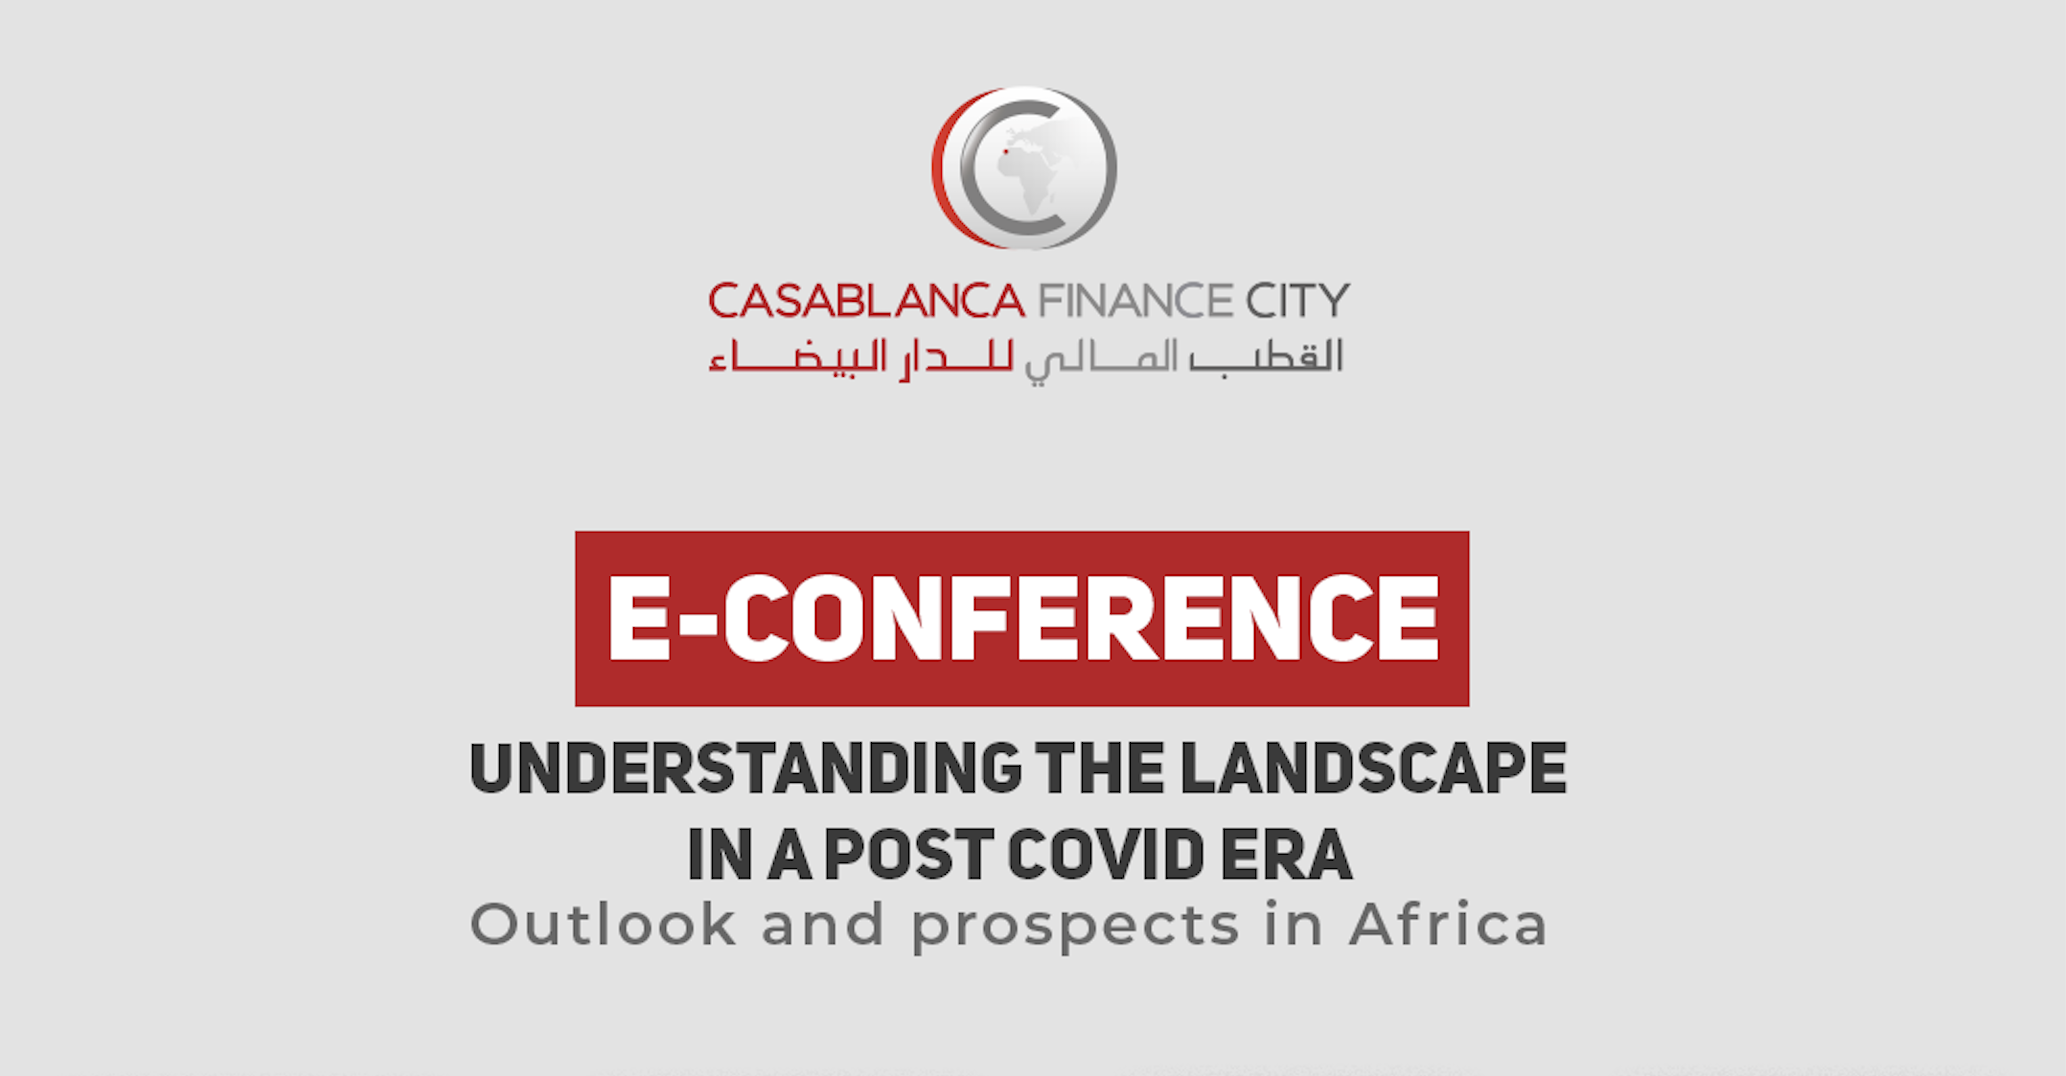 E-conference theme: Understanding the landscape in a post Covid era: Outlook and prospects in Africa